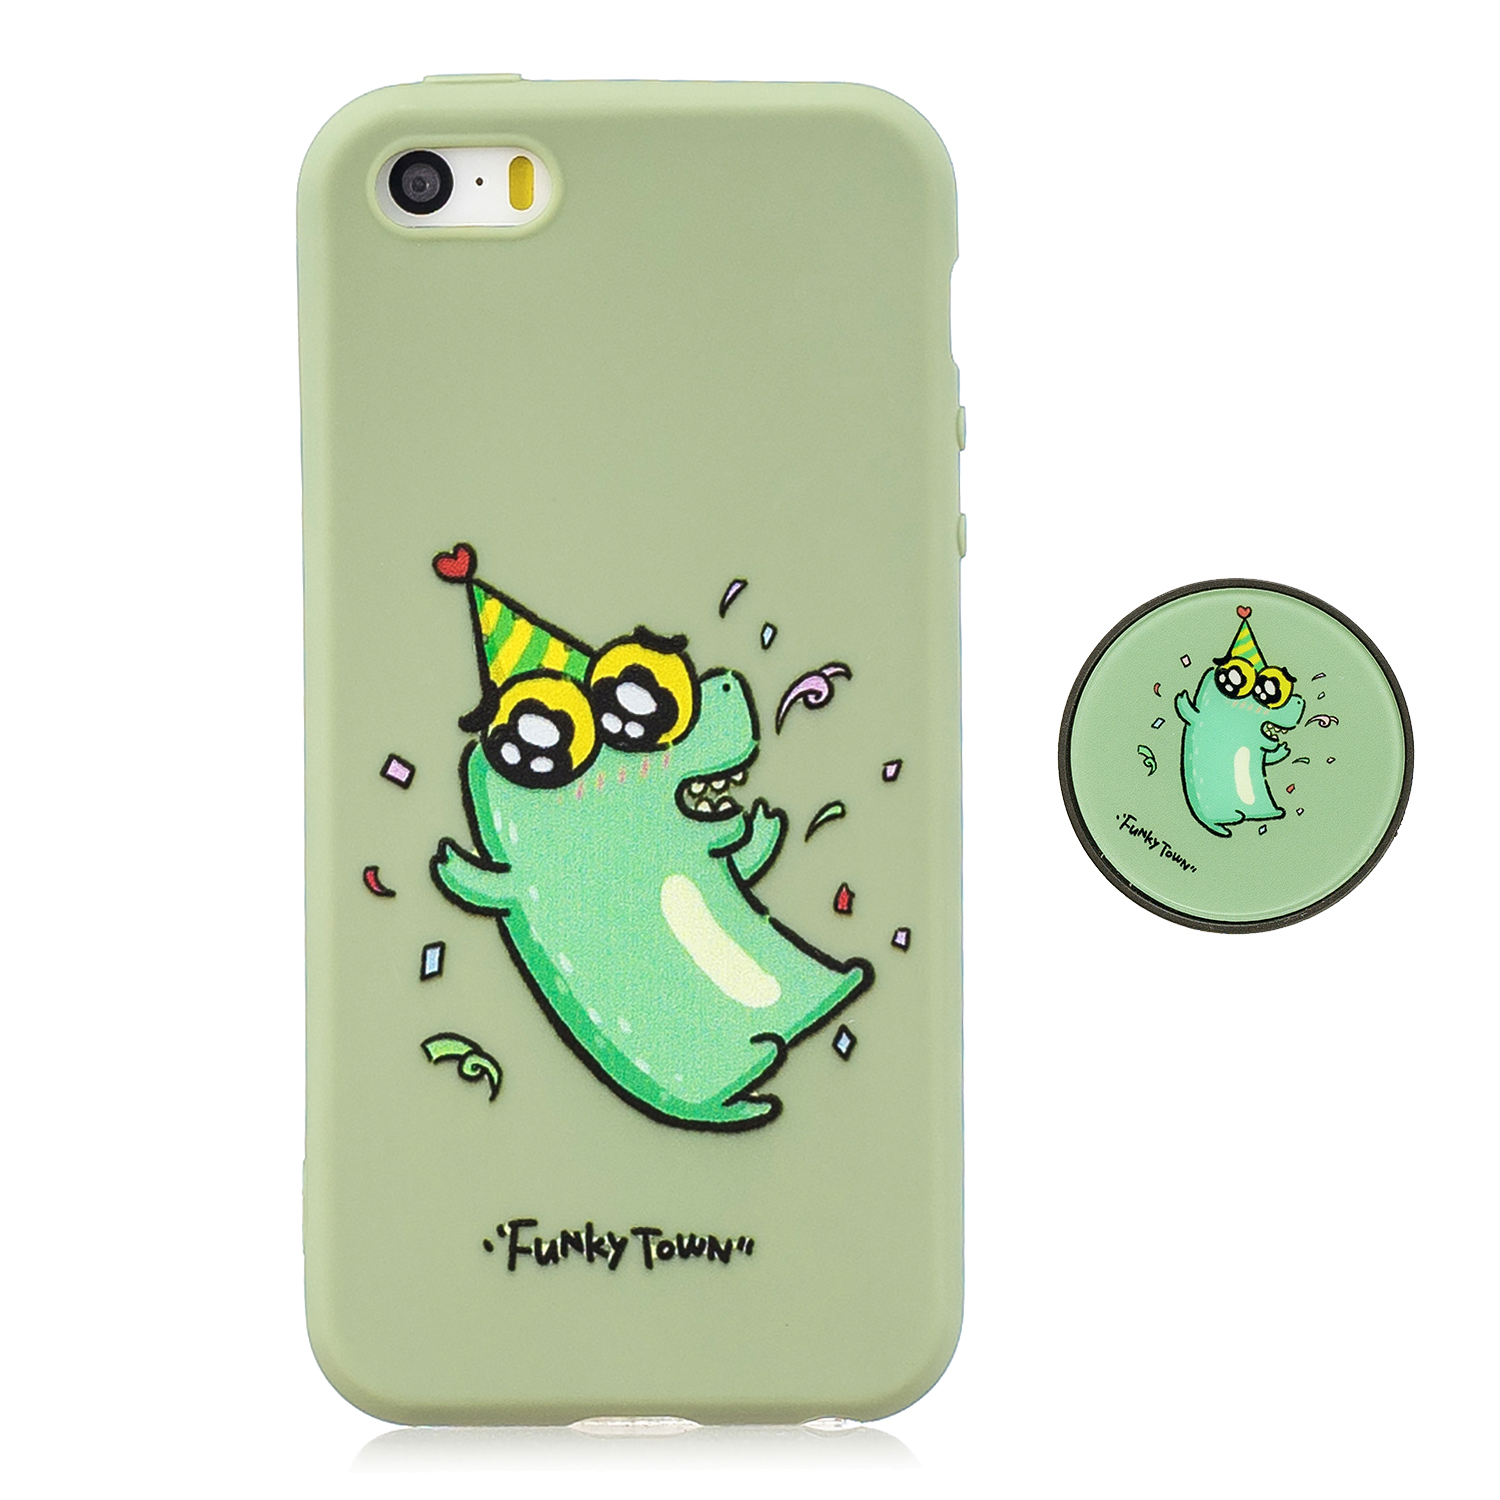 For iPhone 5 5S SE Phone Cases TPU Full Cover Cute Cartoon Painted Case Girls Mobile Phone Cover 2